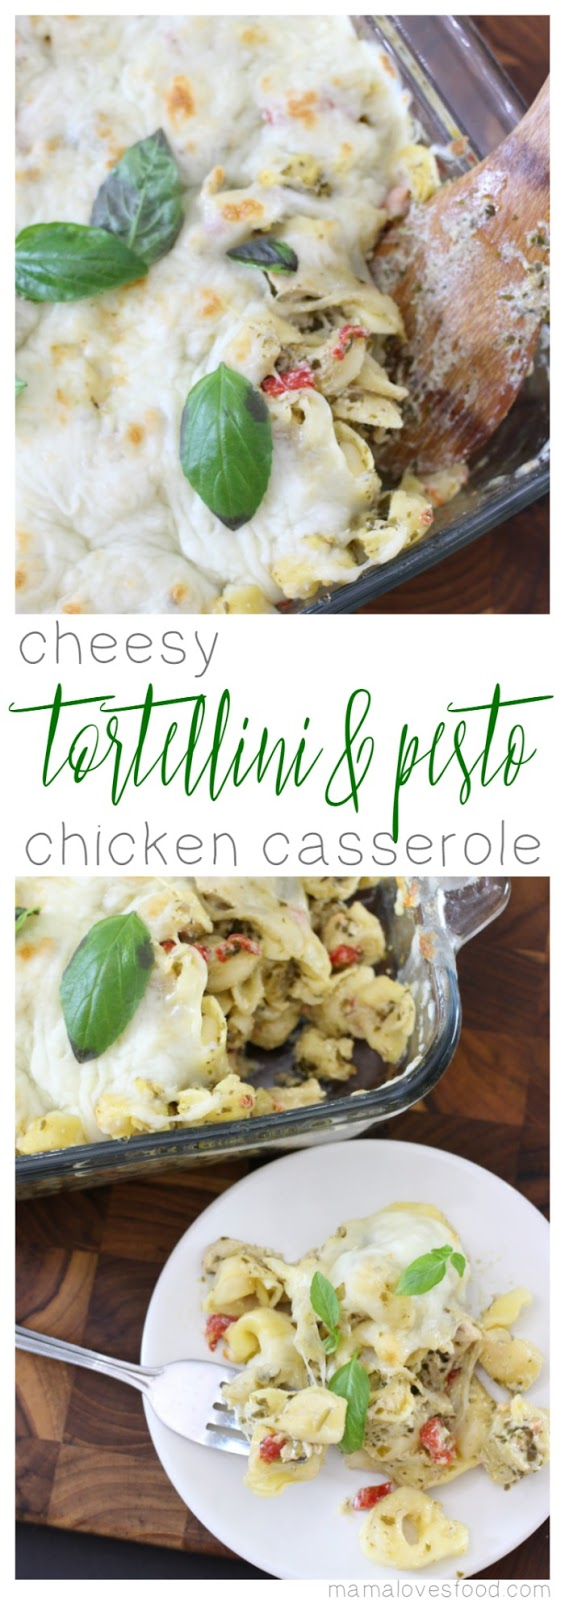 Cheesy Tortellini & Pesto Chicken Casserole Dinner Recipe